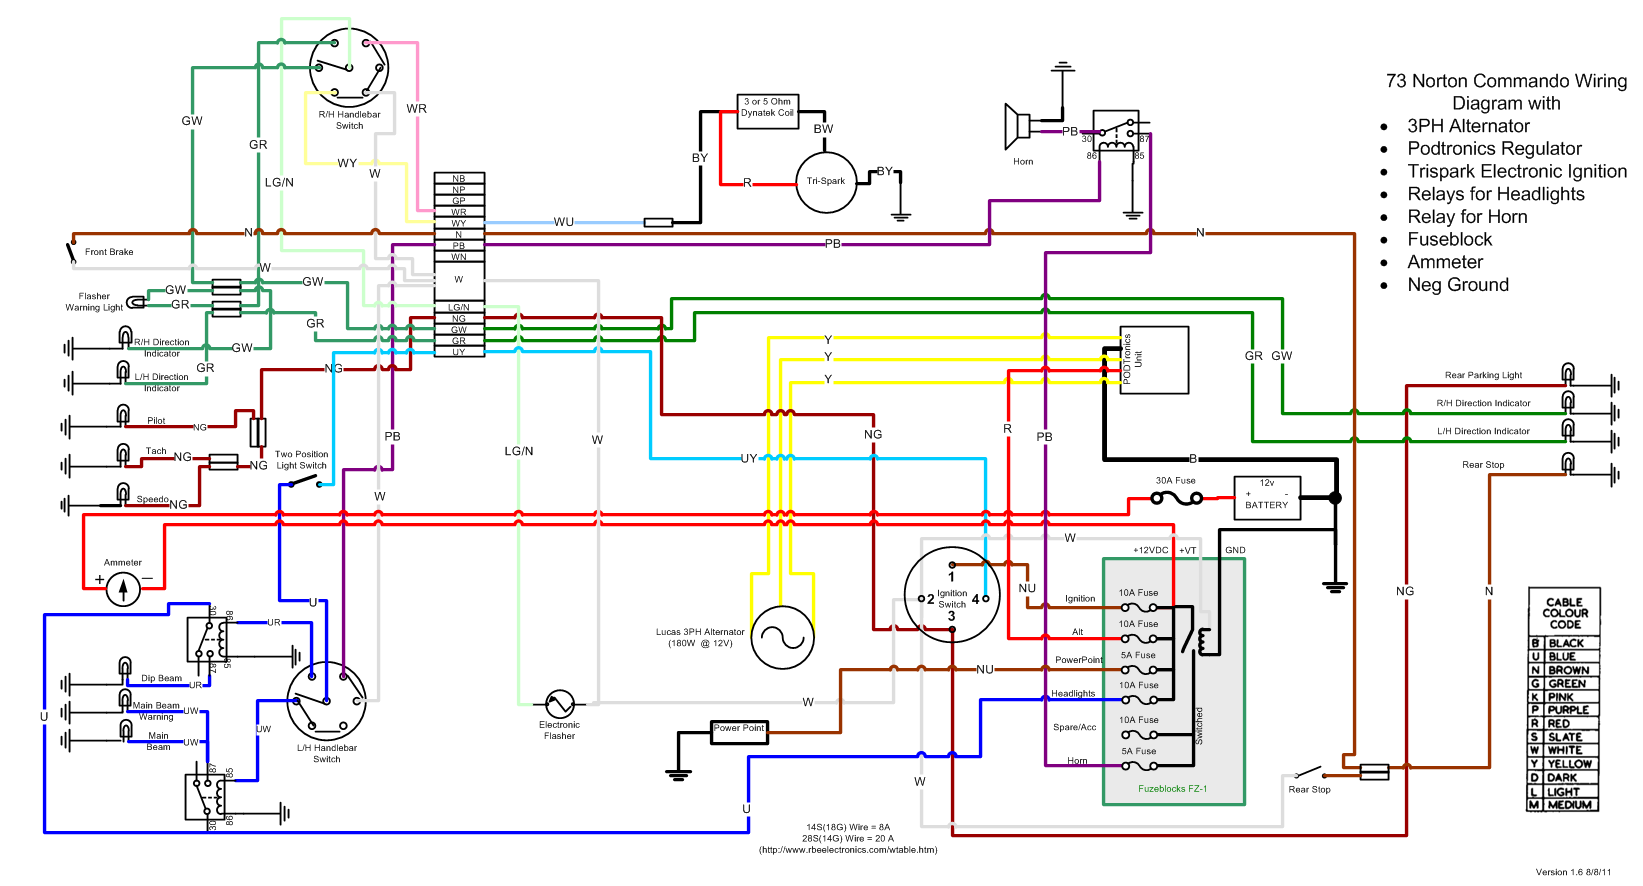 Visio Network Wiring Diagram | Wiring Diagram on samsung electrical schematic, svg electrical schematic, visio pump symbols, office electrical schematic, visio electronic schematic, visio diagram templates, solidworks electrical schematic, cad electrical schematic, greene rd hydraulic press electrical schematic, stun gun schematic,